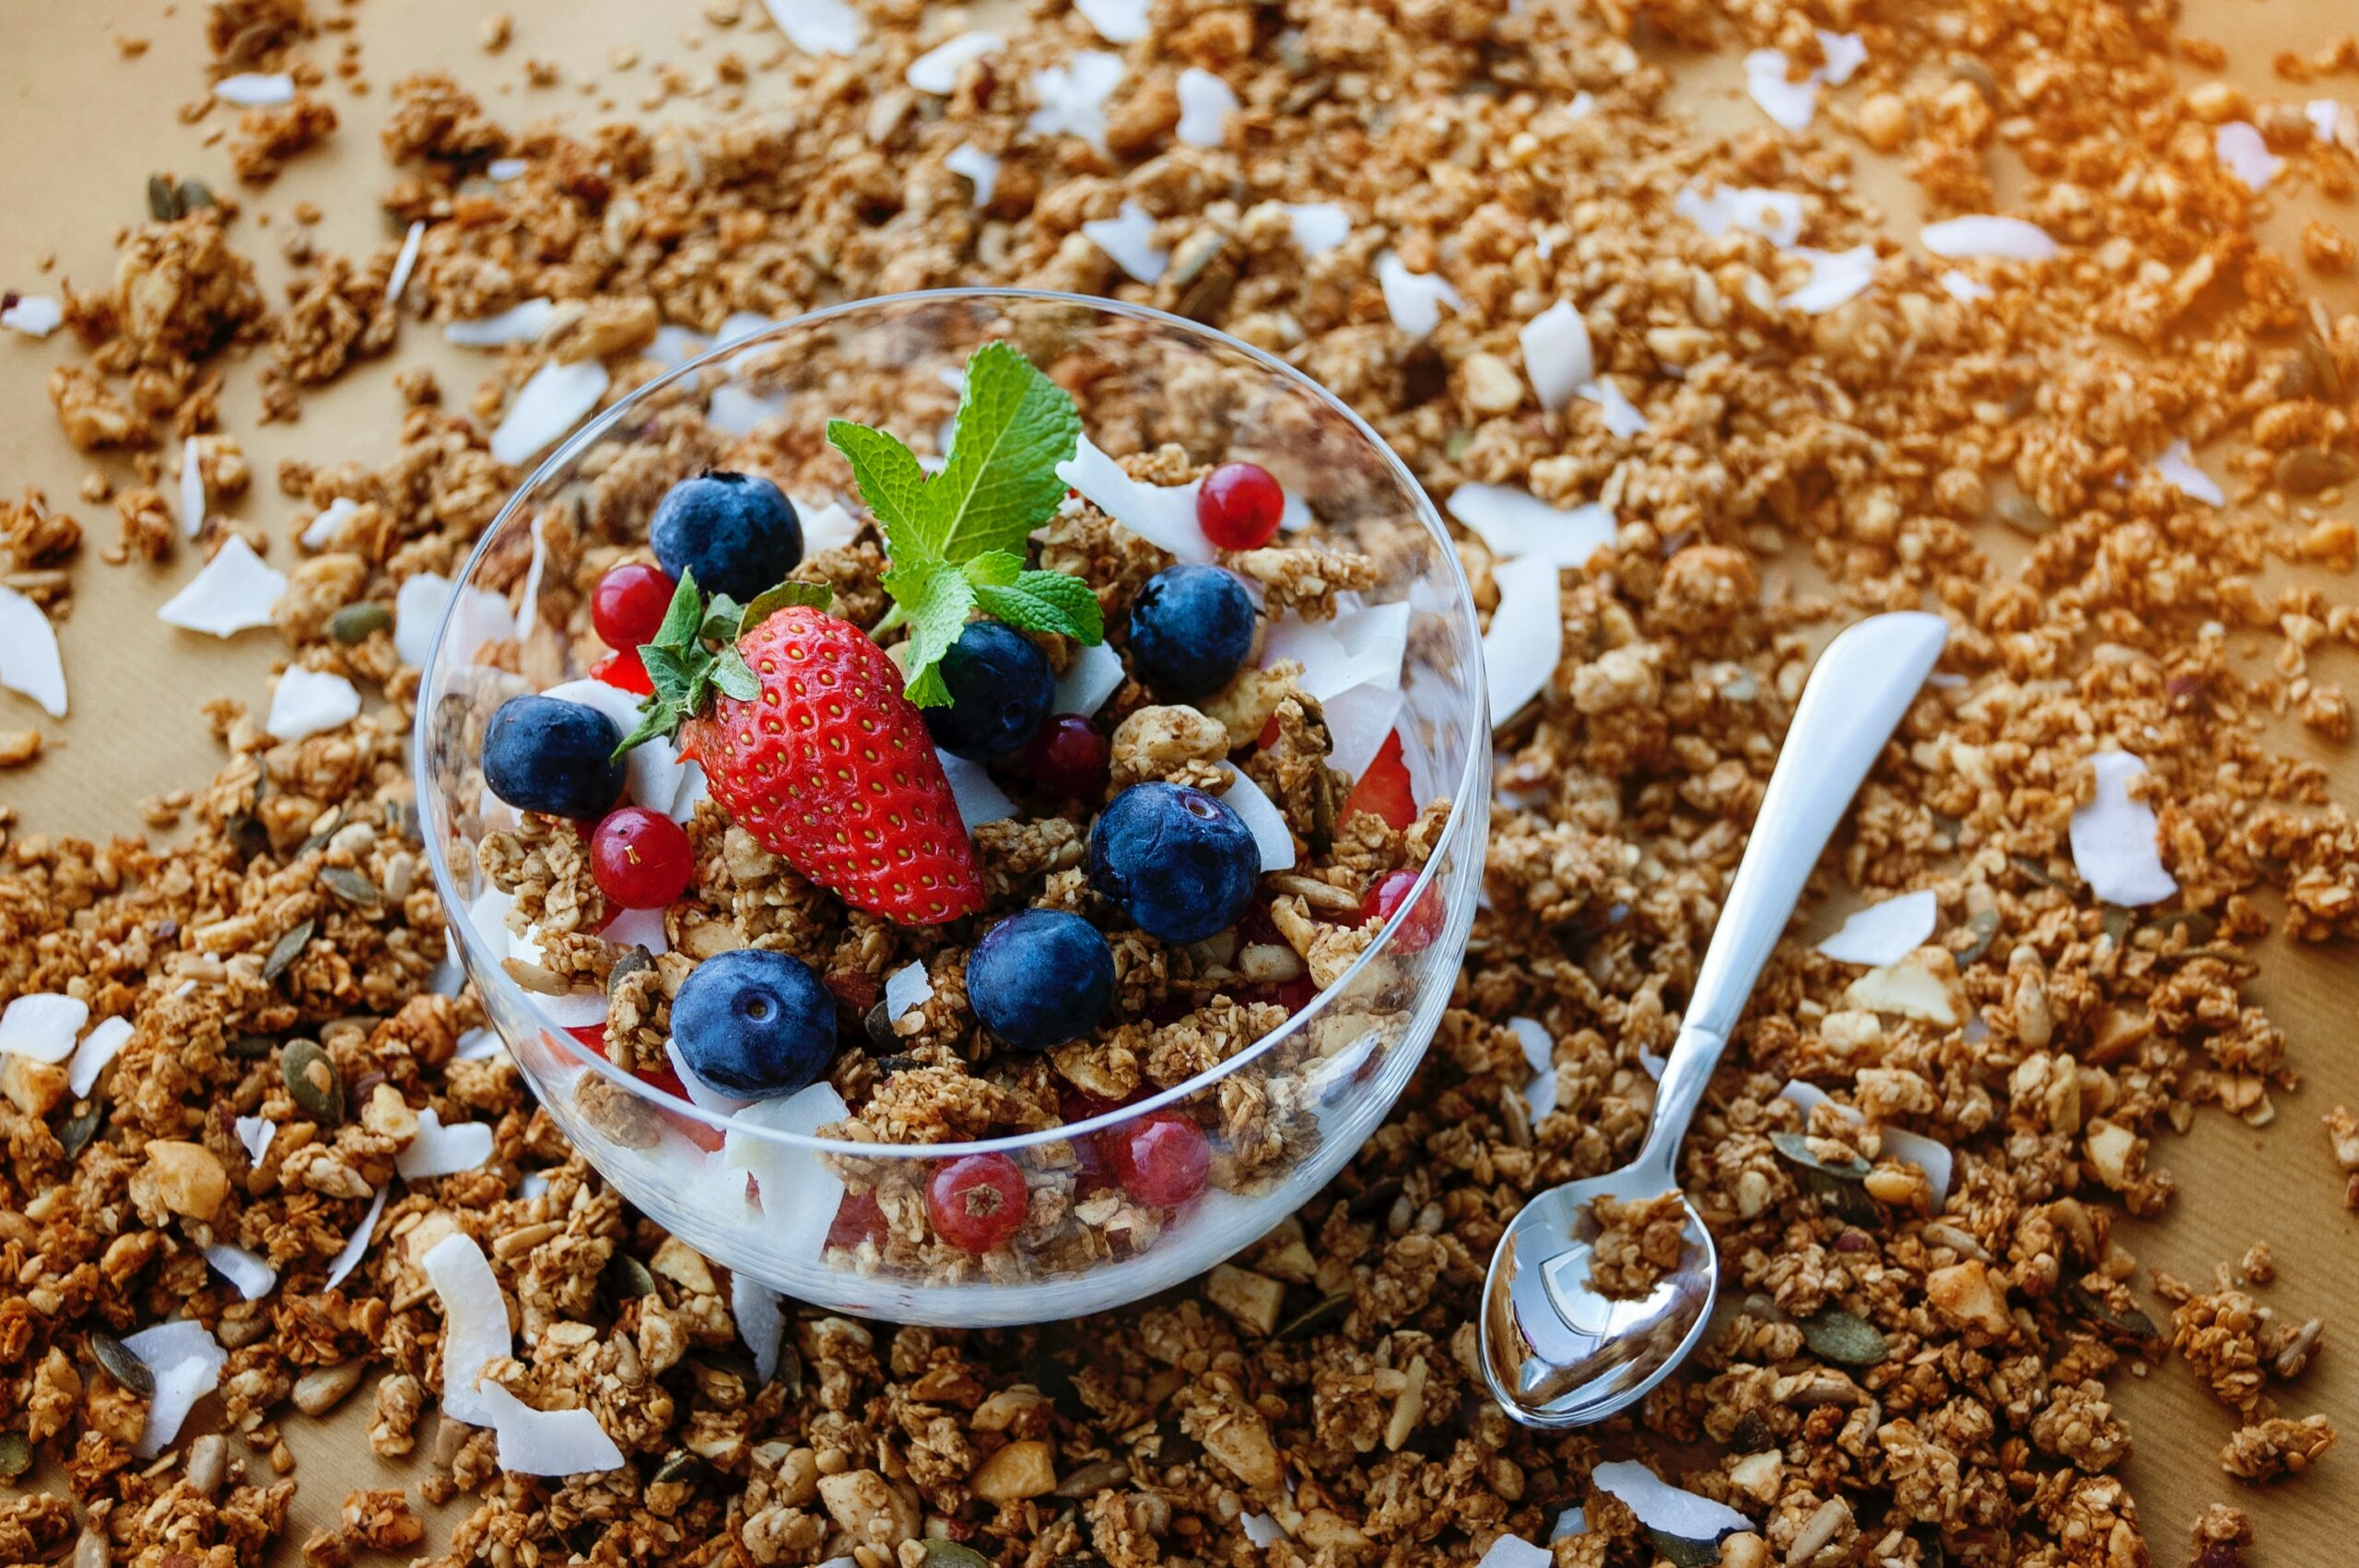 Food Addiction: The Chemistry of Dairy & Wheat